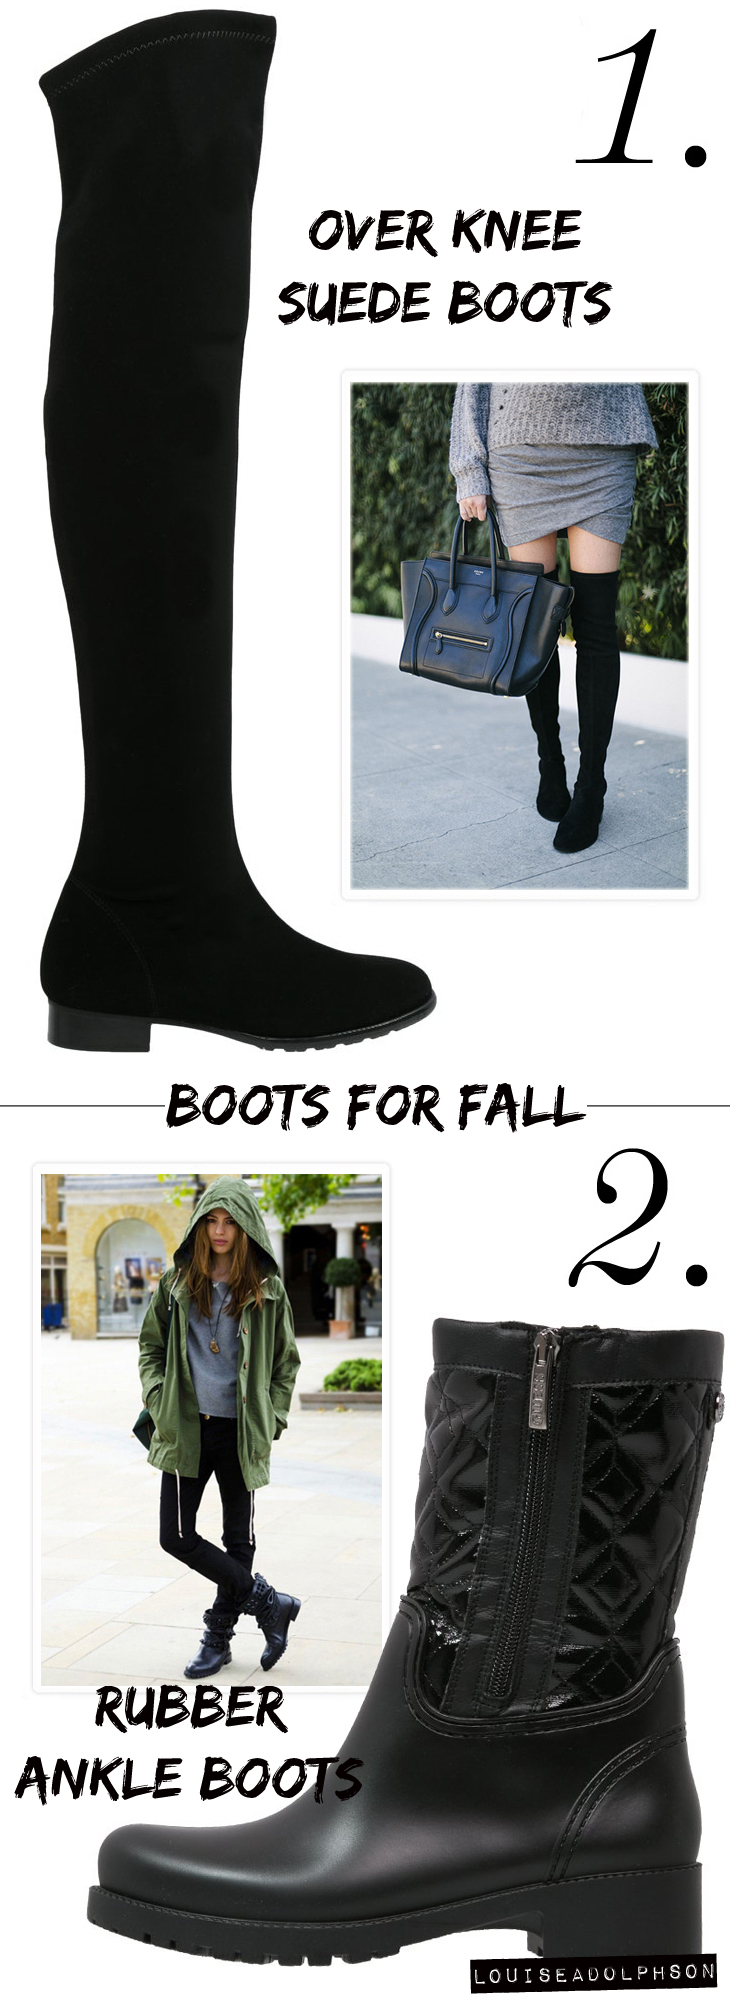 the best boots for fall trends for fall overknee suede boots ankle boots army chic